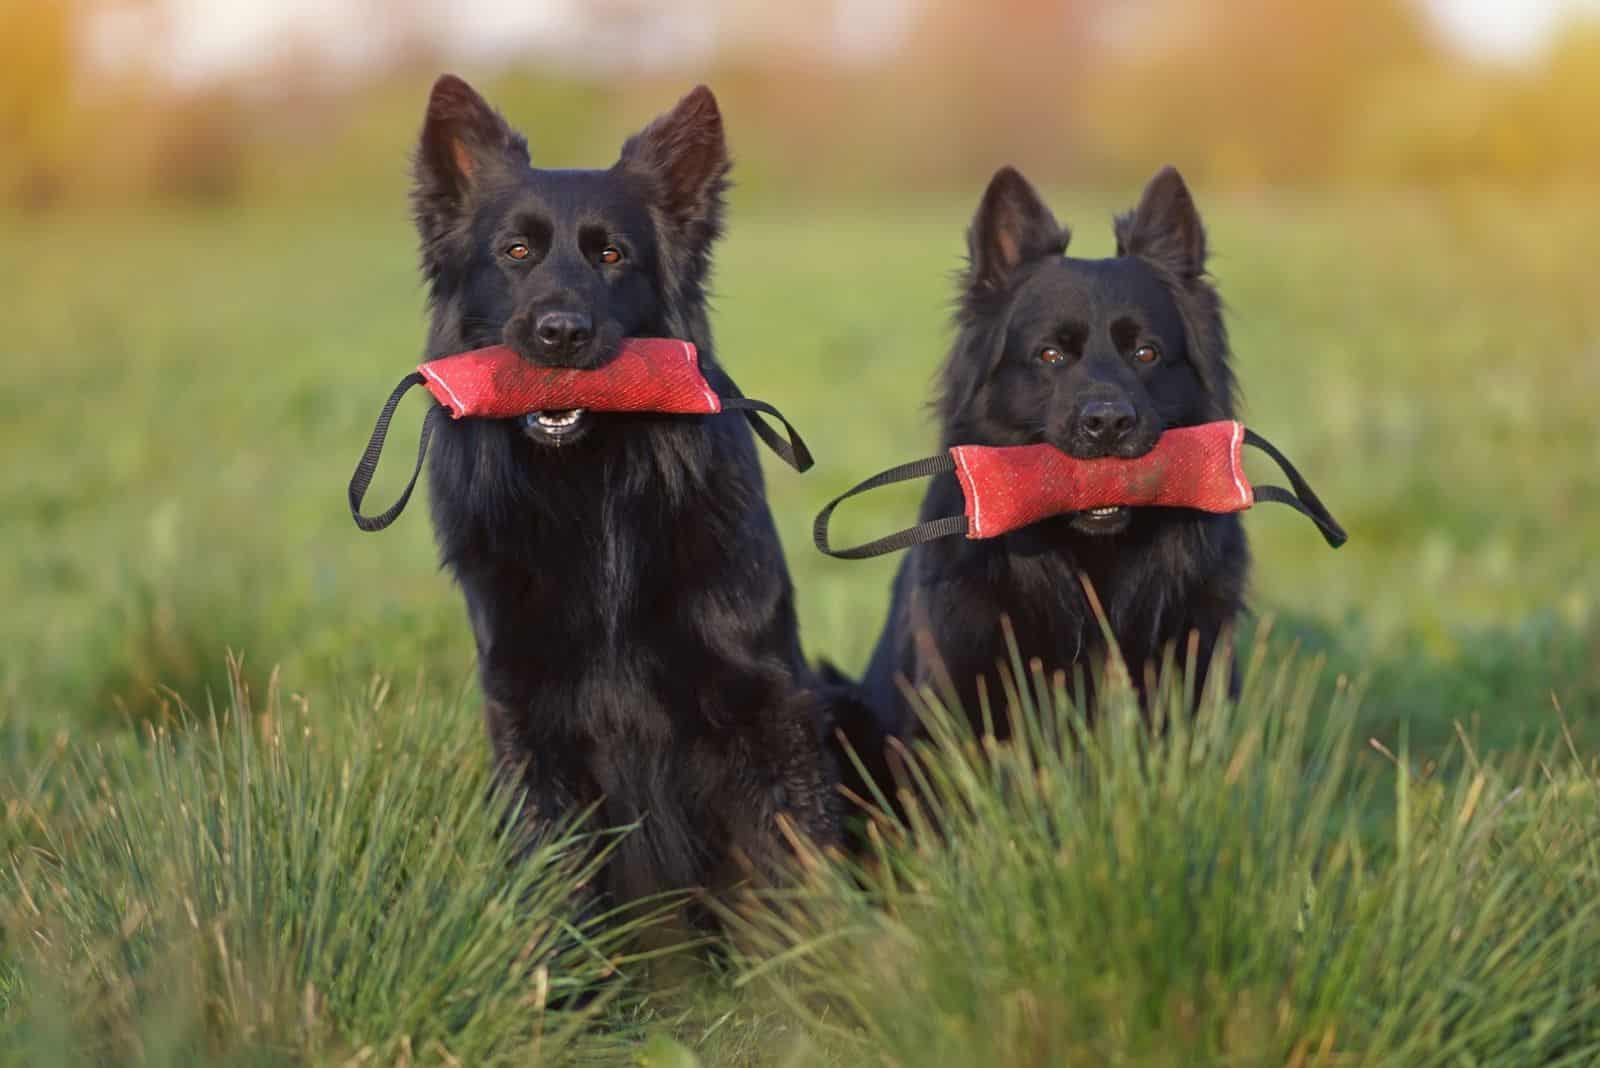 Two obedient long-haired black German Shepherd dogs sitting together in a green grass holding red soft bite tug toys in their mouths